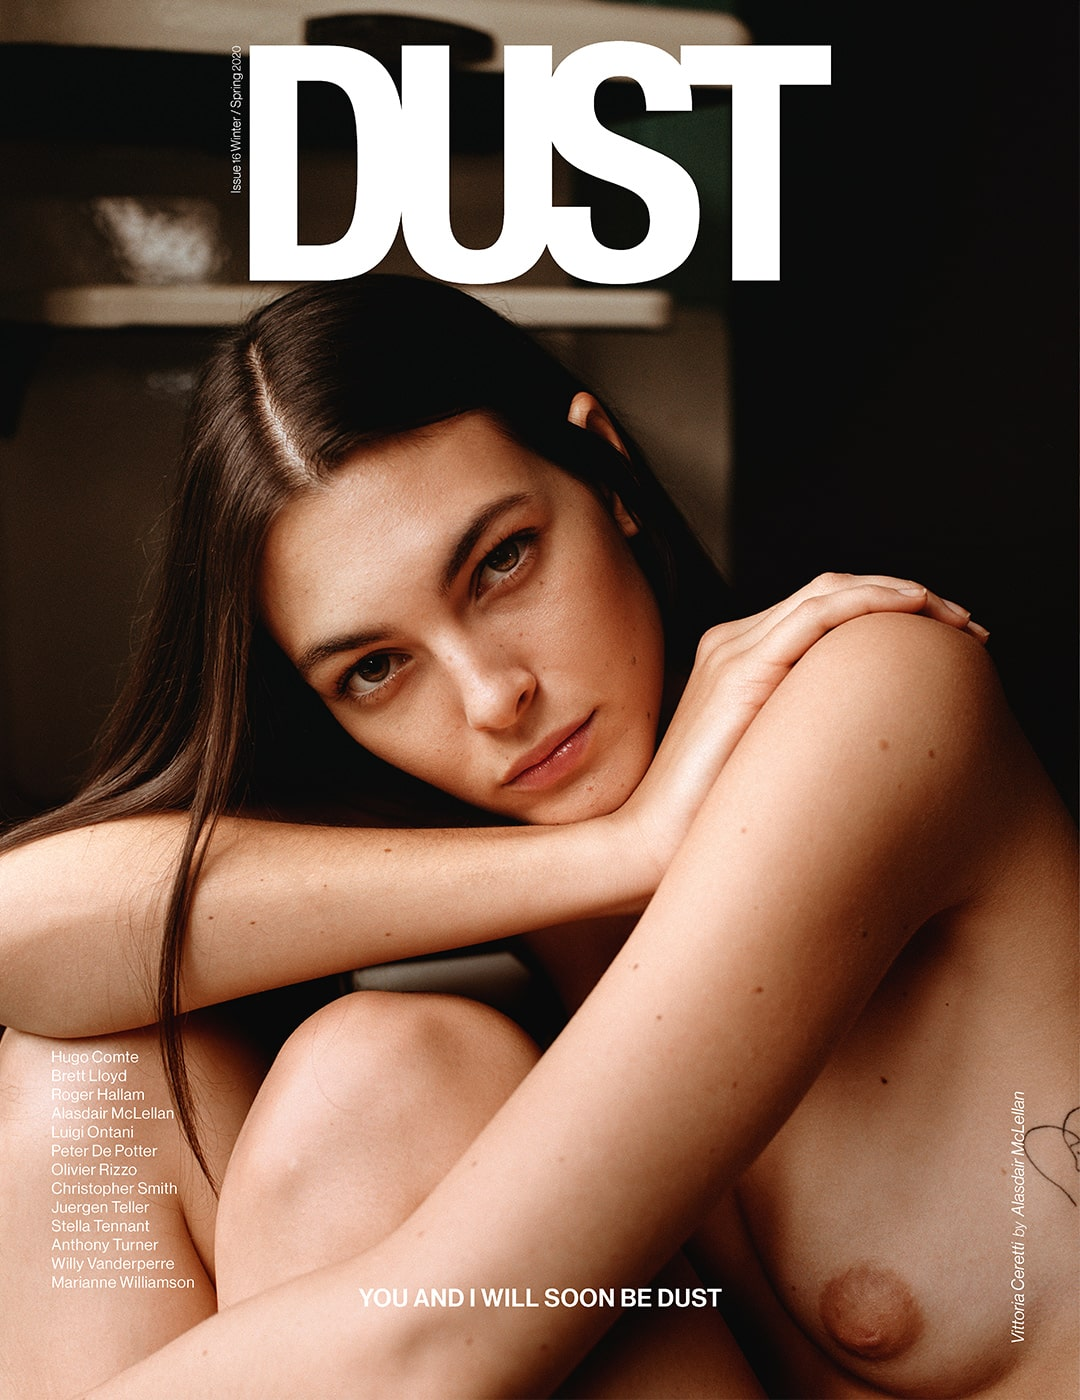 DUST ISSUE #16 YOU AND I WILL SOON BE DUST – Cover #6